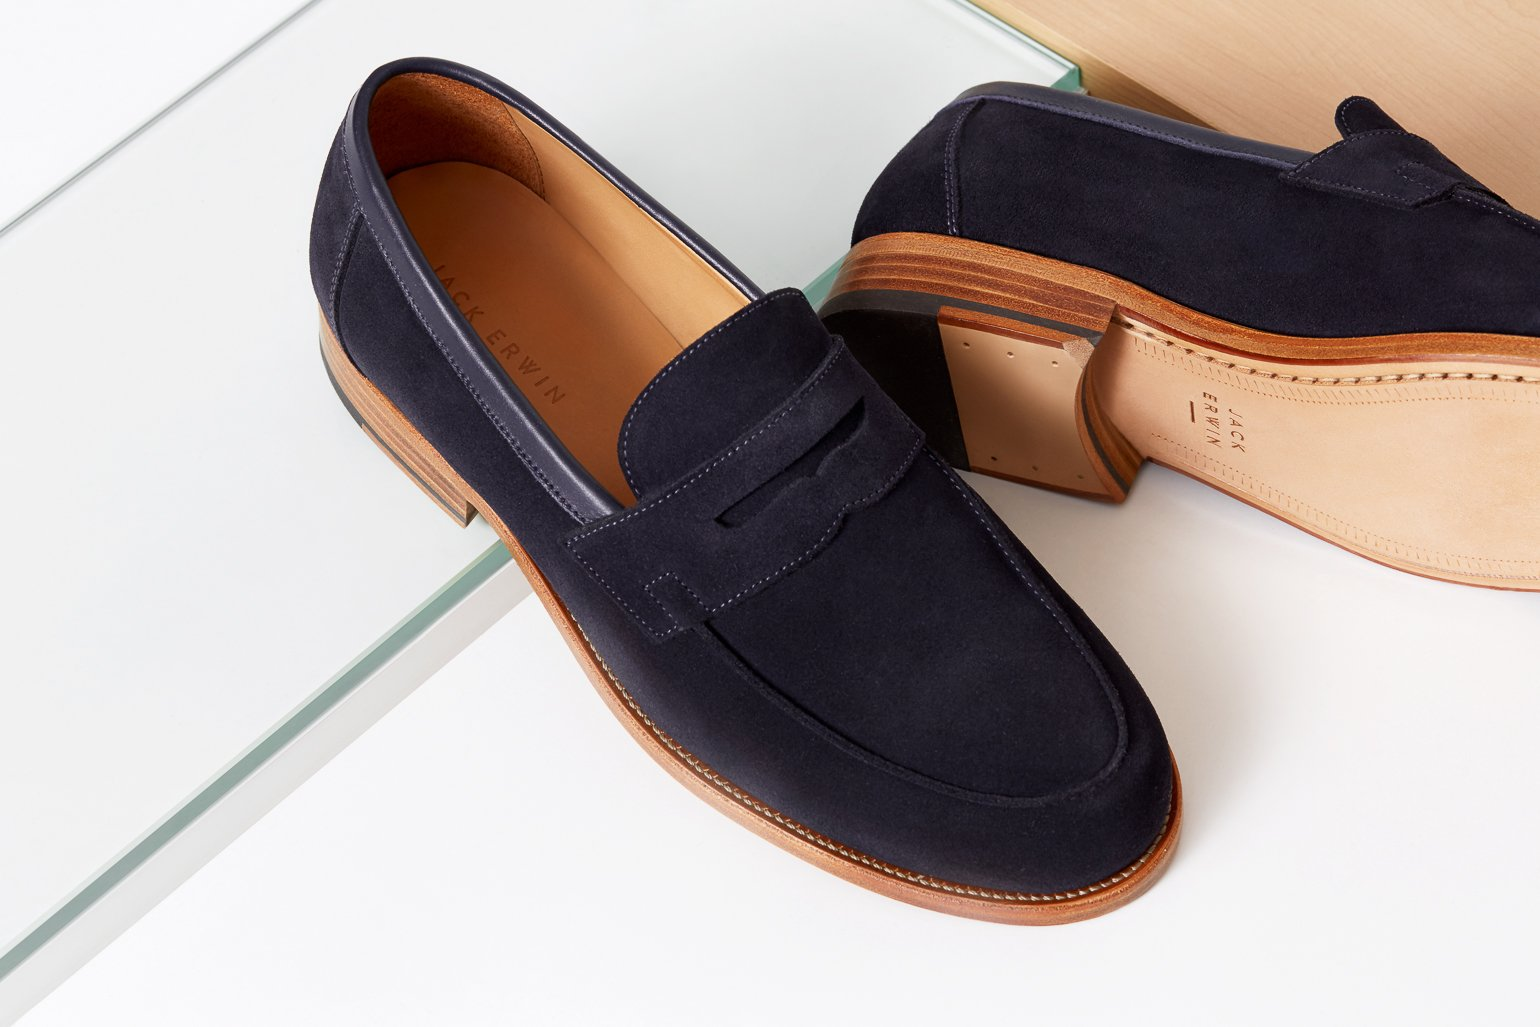 #28 -  Jack Erwin Willy Suede Loafer